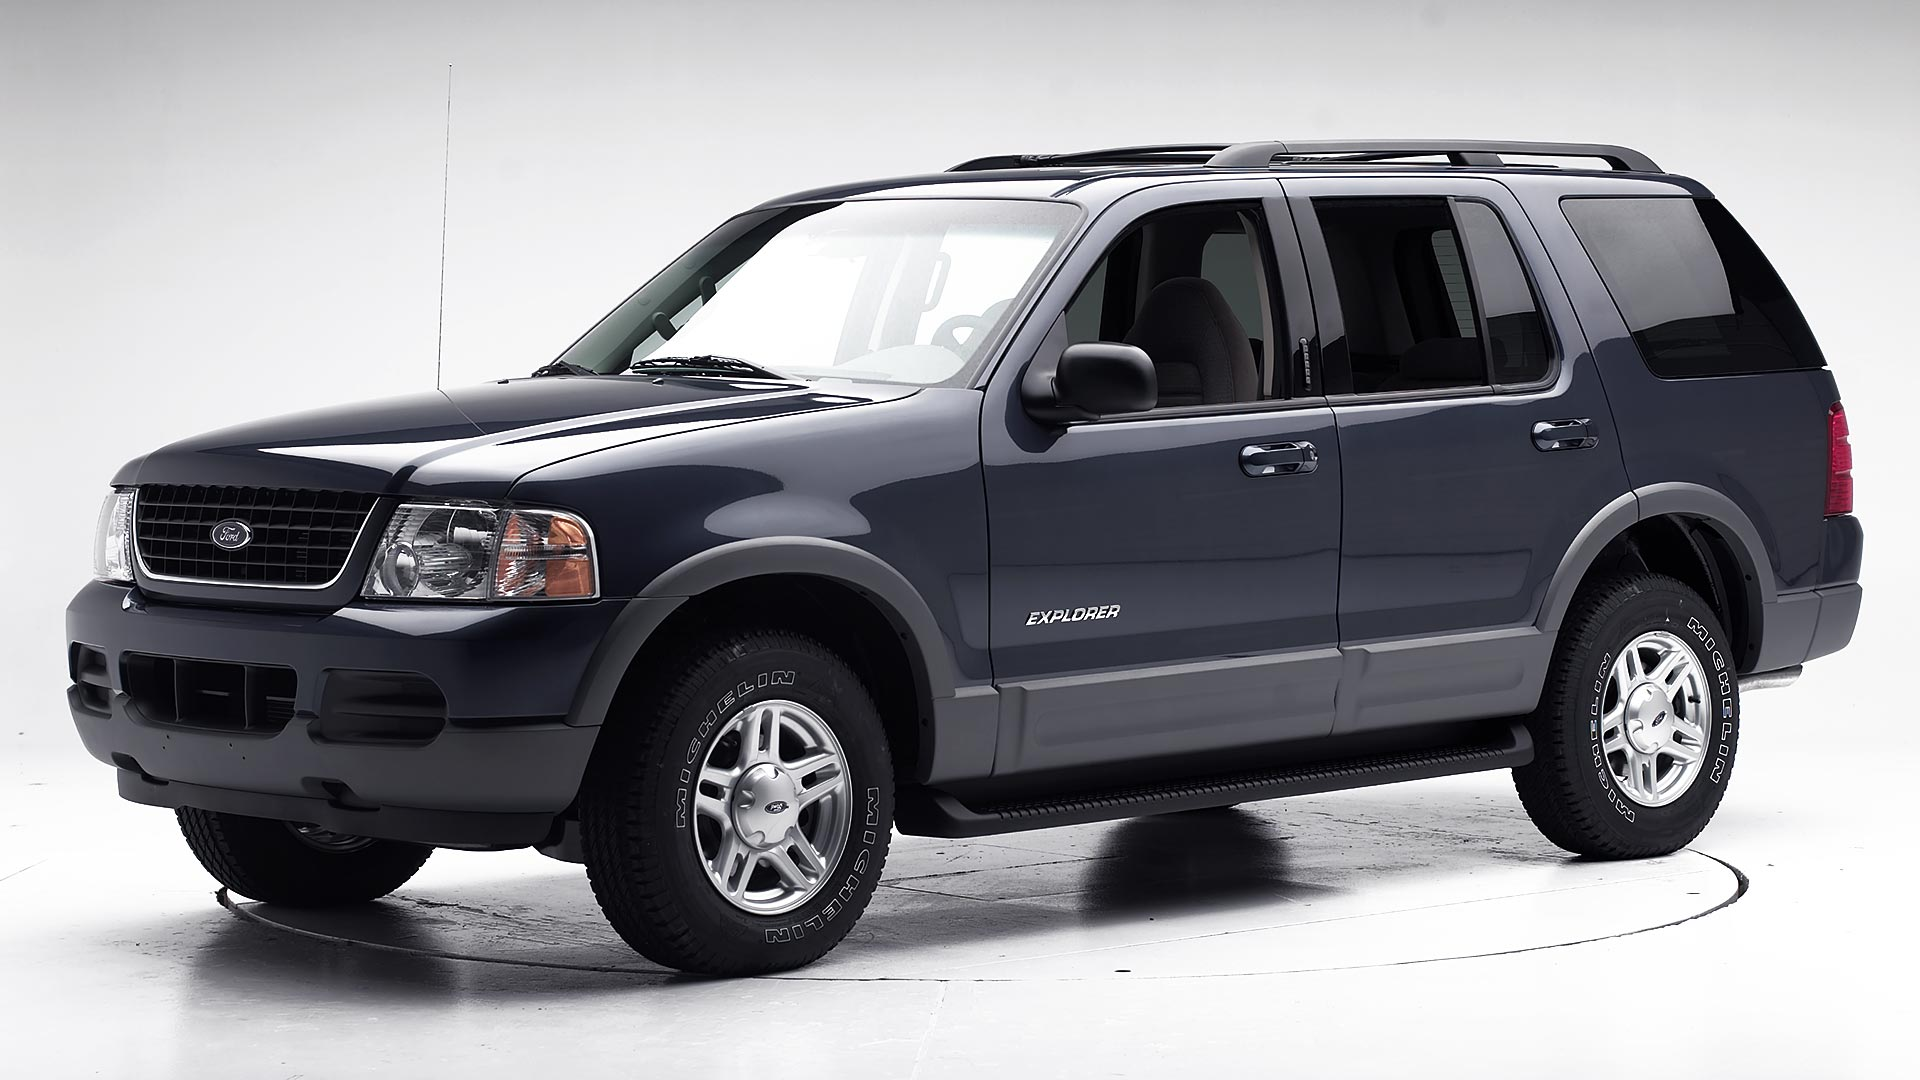 2002 Ford Explorer 4-door SUV